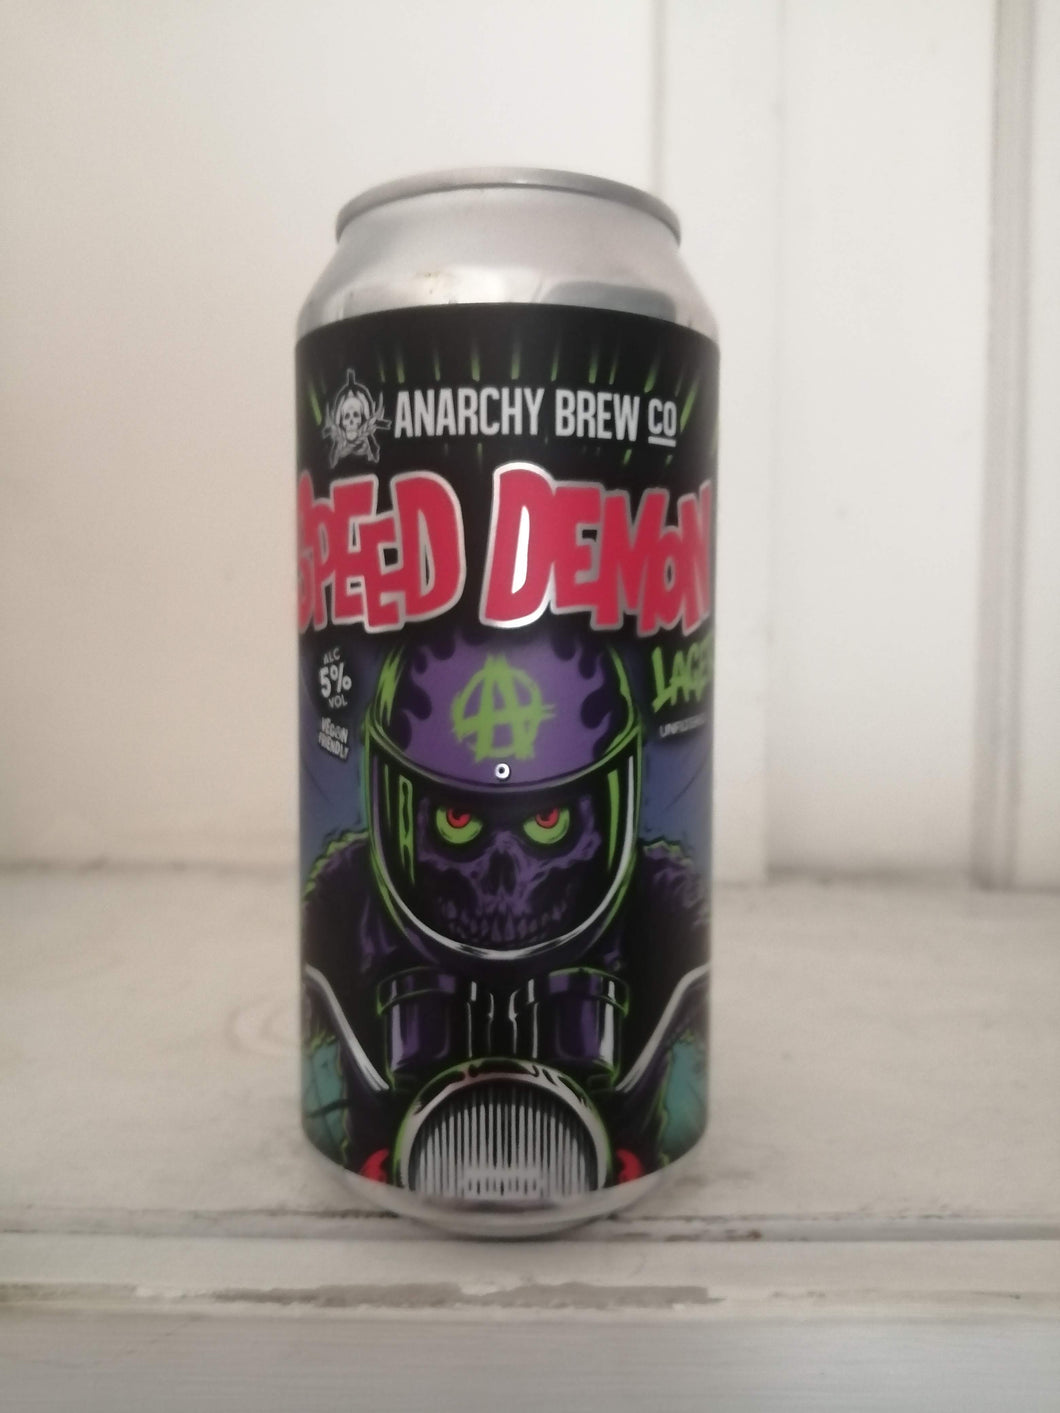 Anarchy Speed Demon 5% (440ml can)